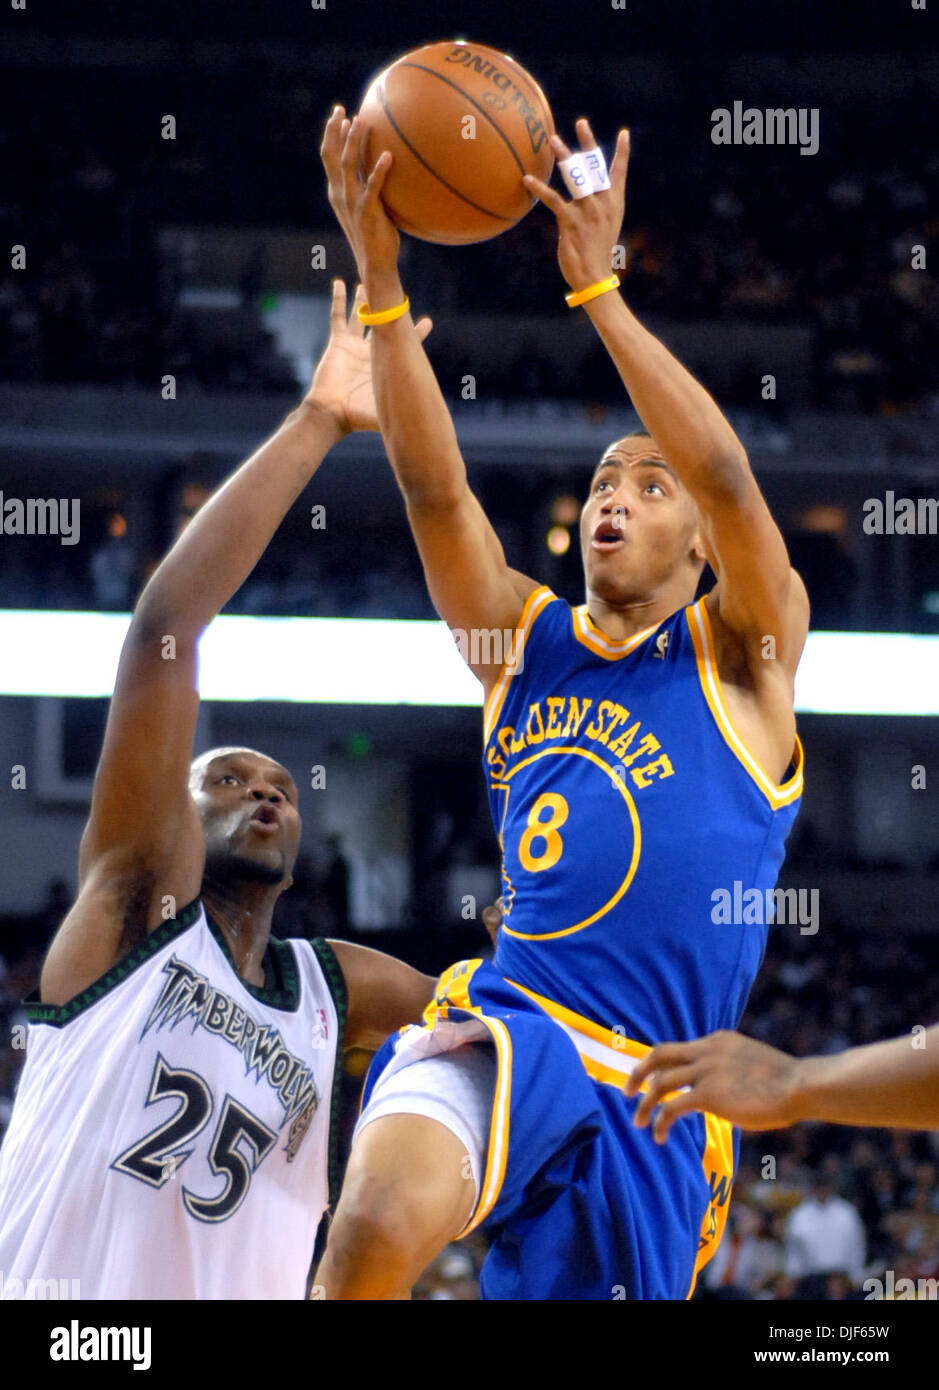 Warriors guard Monta Ellis beats Timberwolves defender Al